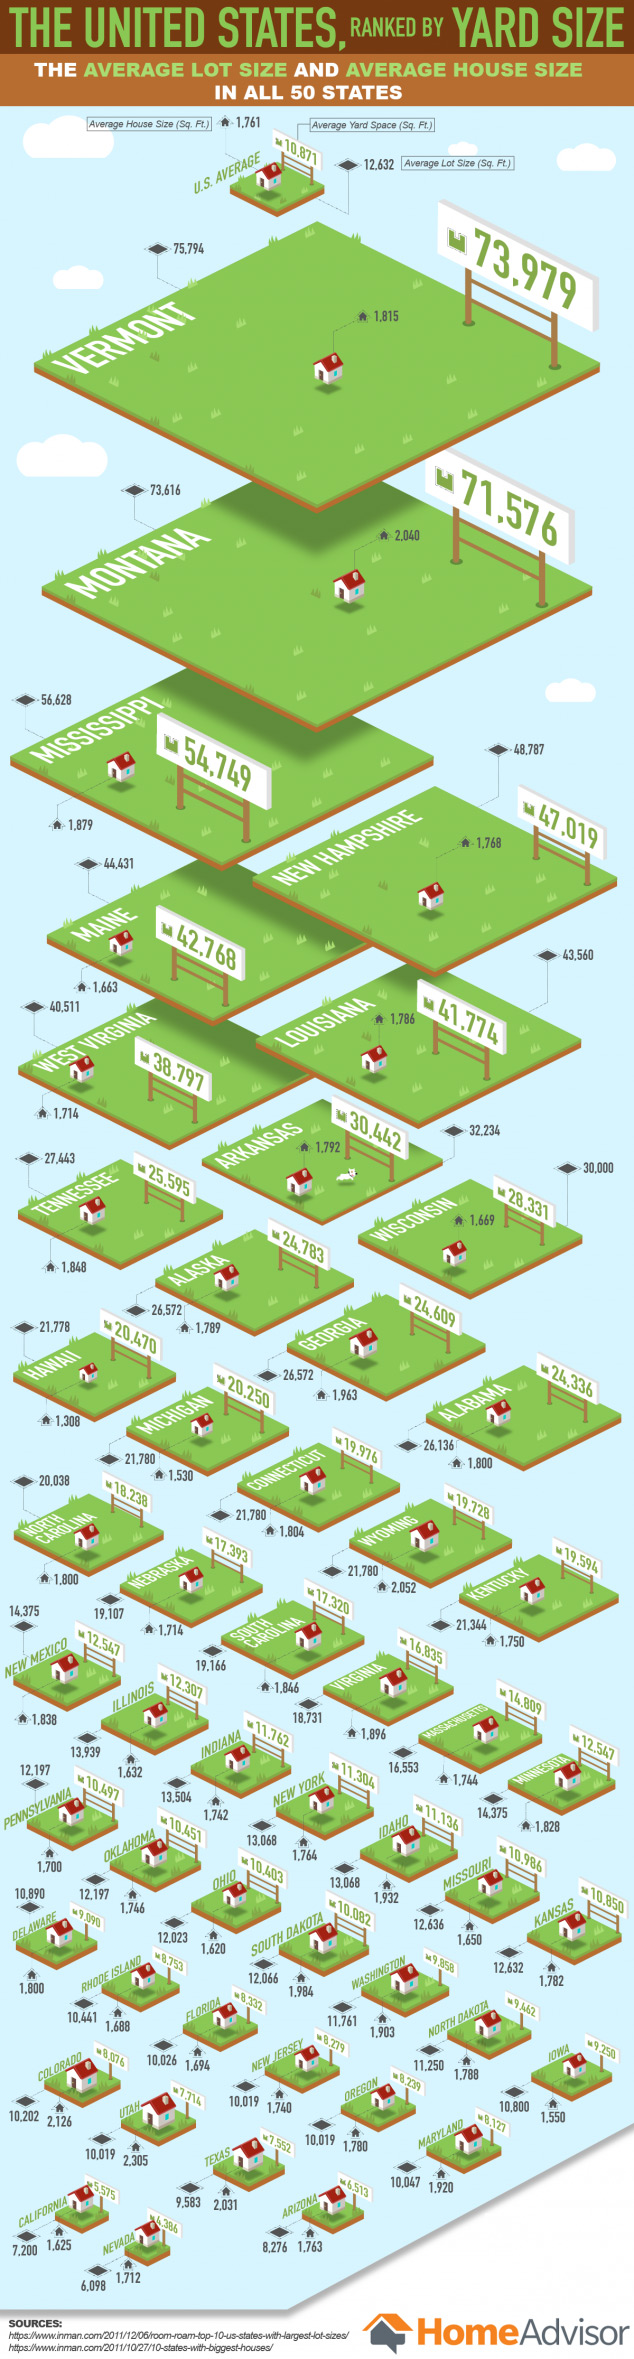 The United States, Ranked by Yard Size - HomeAdvisor.com - Infographic